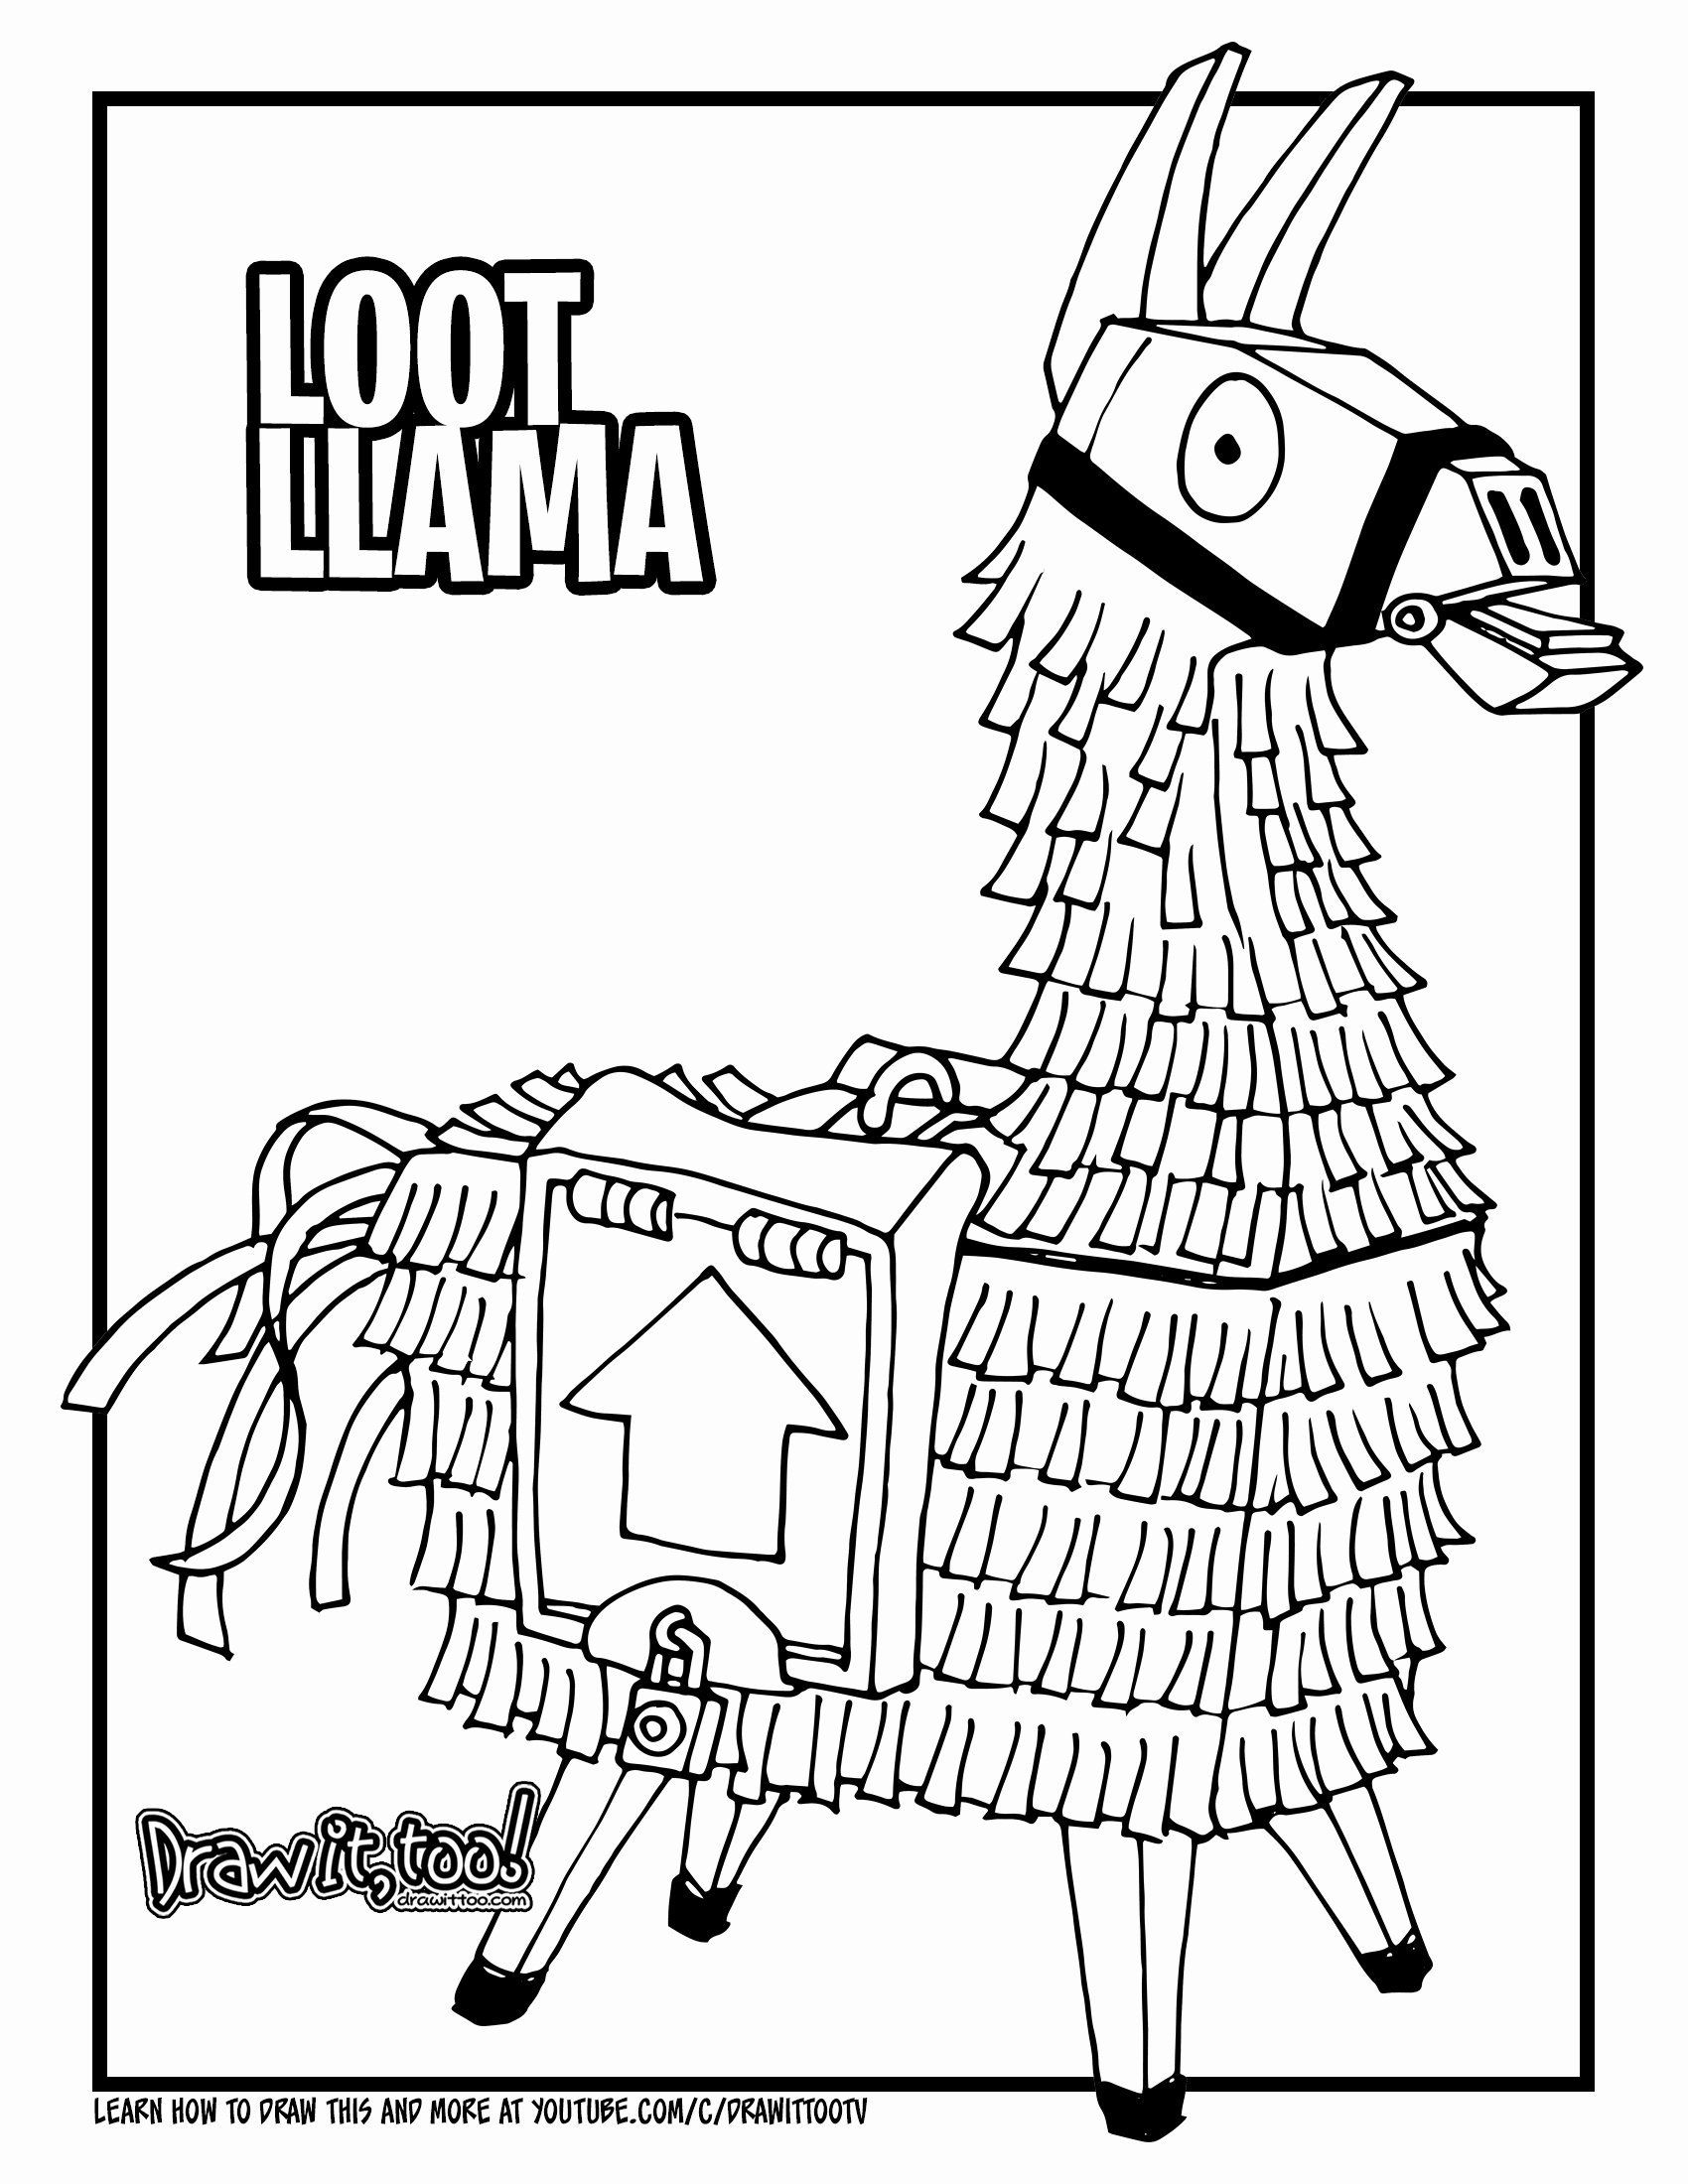 Fortnite Llama Coloring Page Inspirational How To Draw The Loot Llama Fortnite Battle Royale Drawing In 2020 Coloring Pages Coloring Books Coloring Pages Inspirational